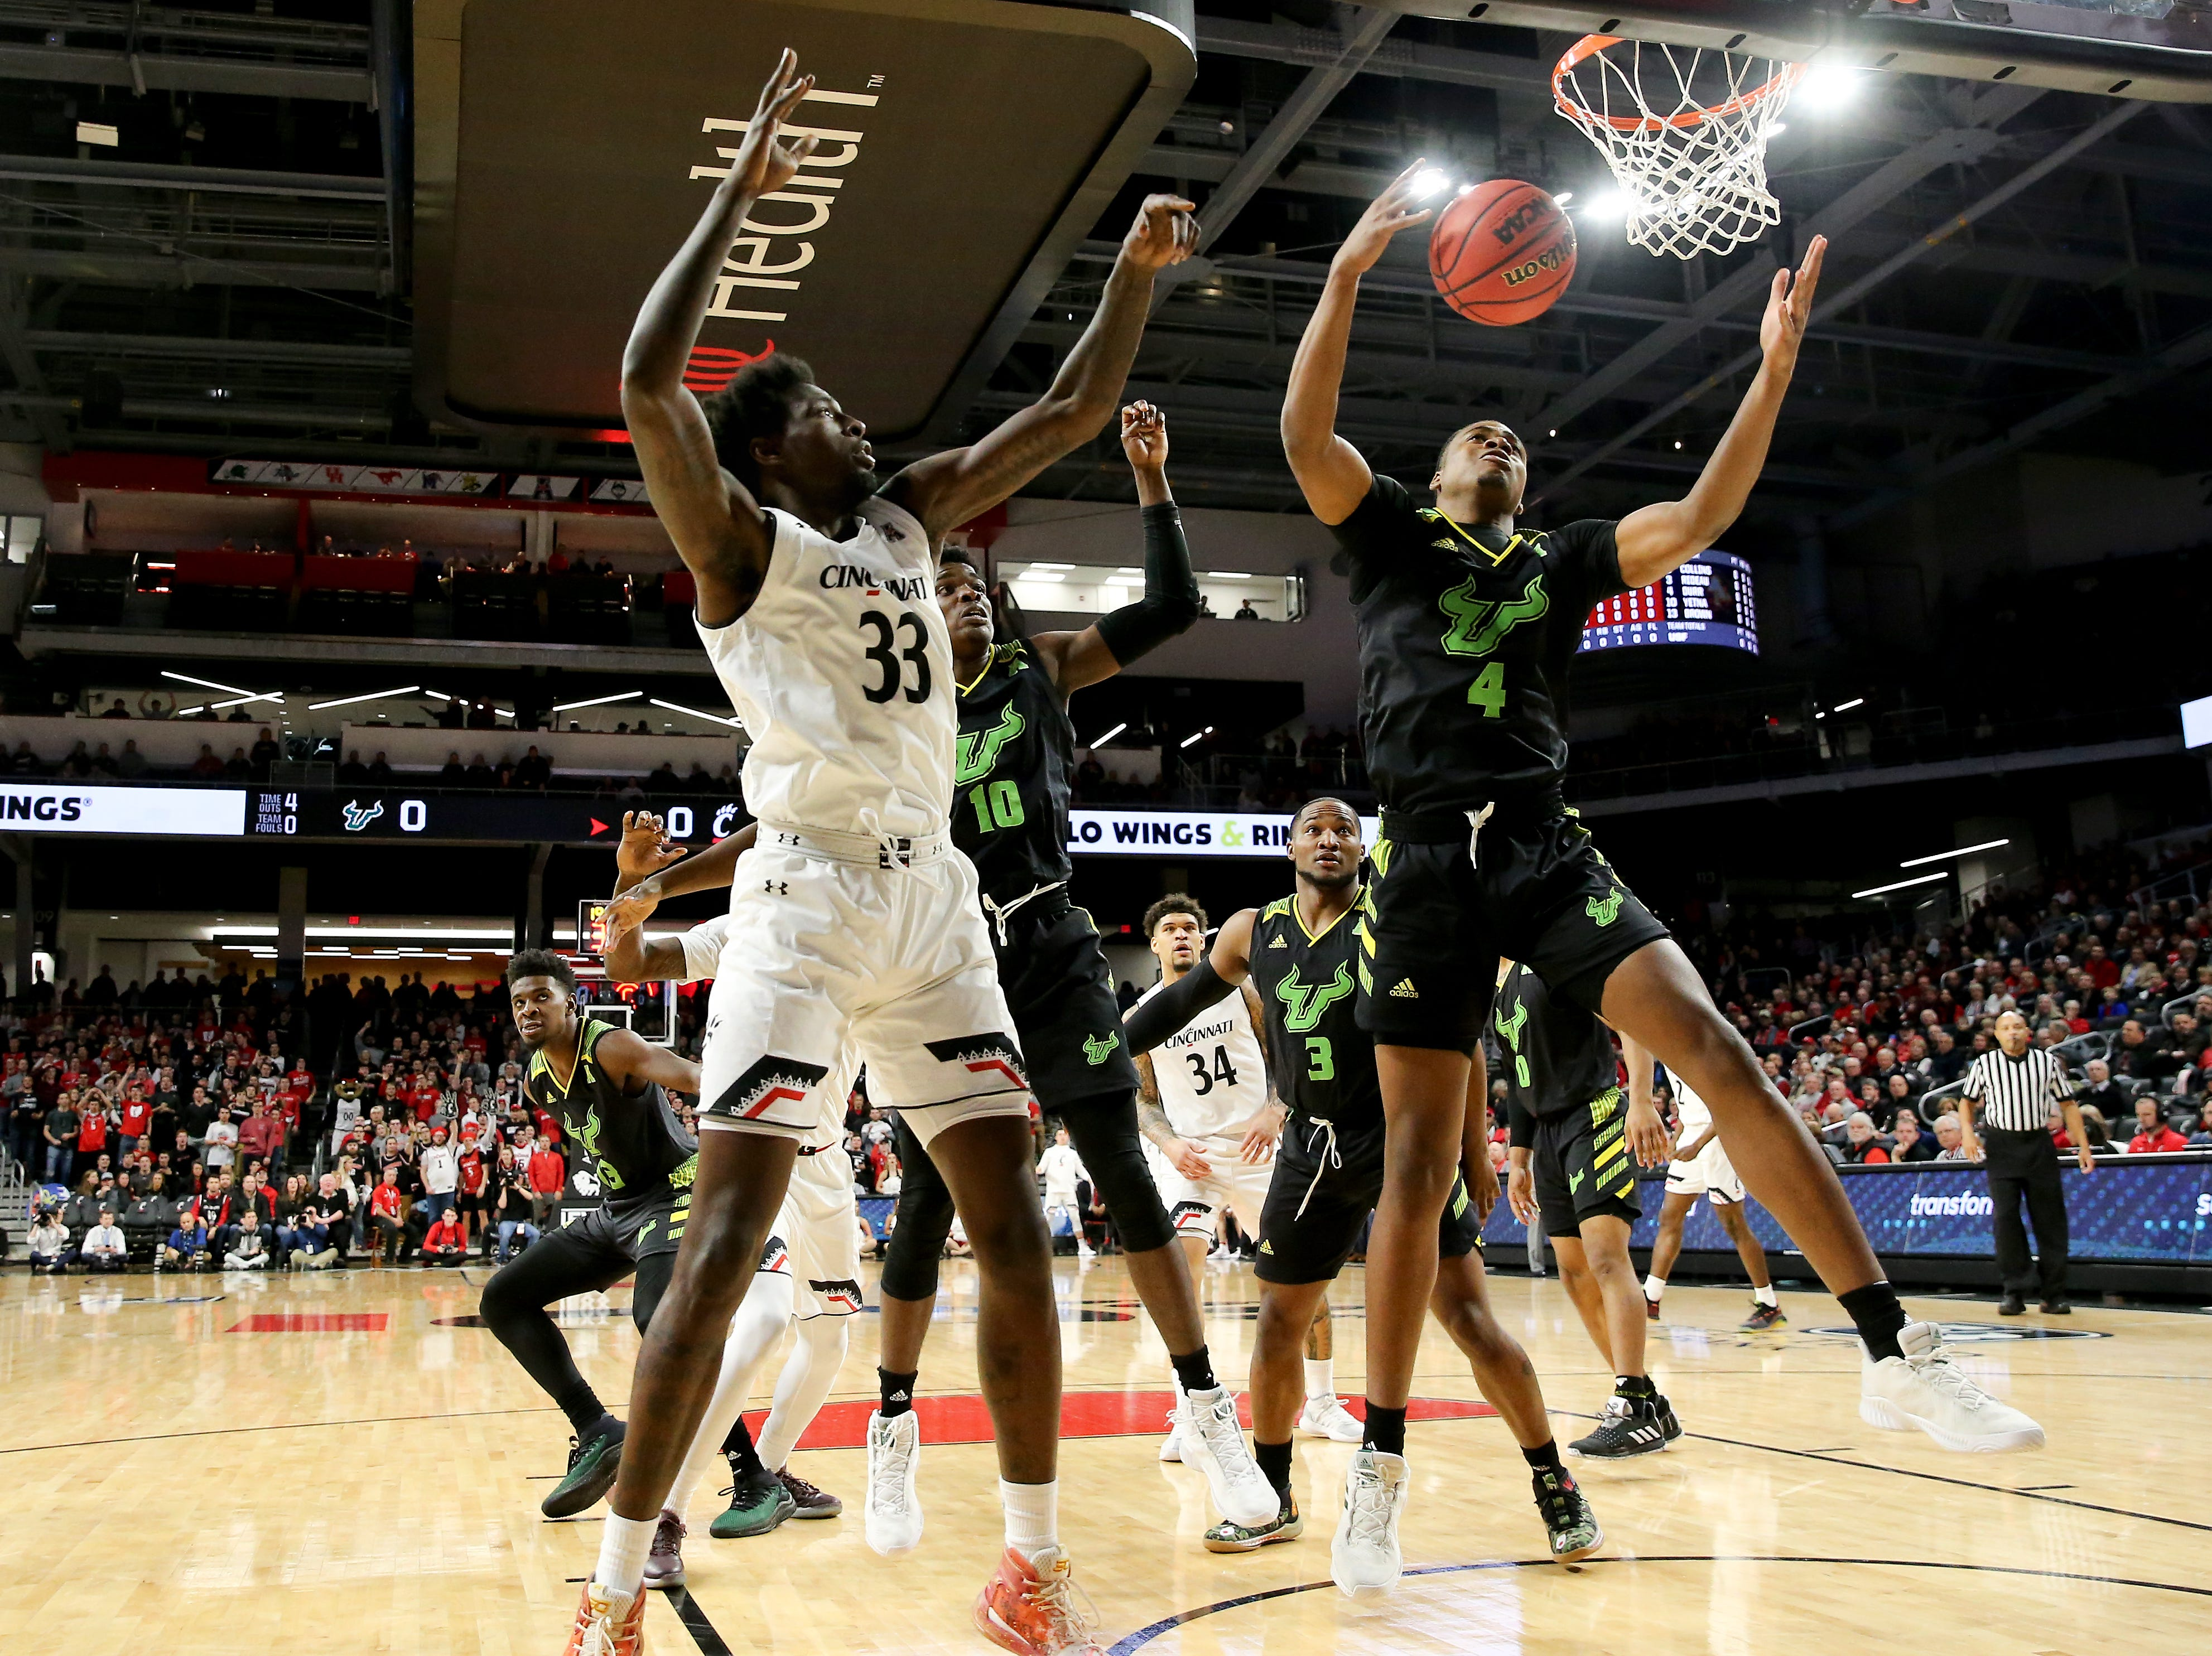 Cincinnati Bearcats center Nysier Brooks (33) and South Florida Bulls forward Michael Durr (4) battle for a rebound in the first half of an NCAA college basketball game, Tuesday, Jan. 15, 2019, at Fifth Third Arena in Cincinnati.